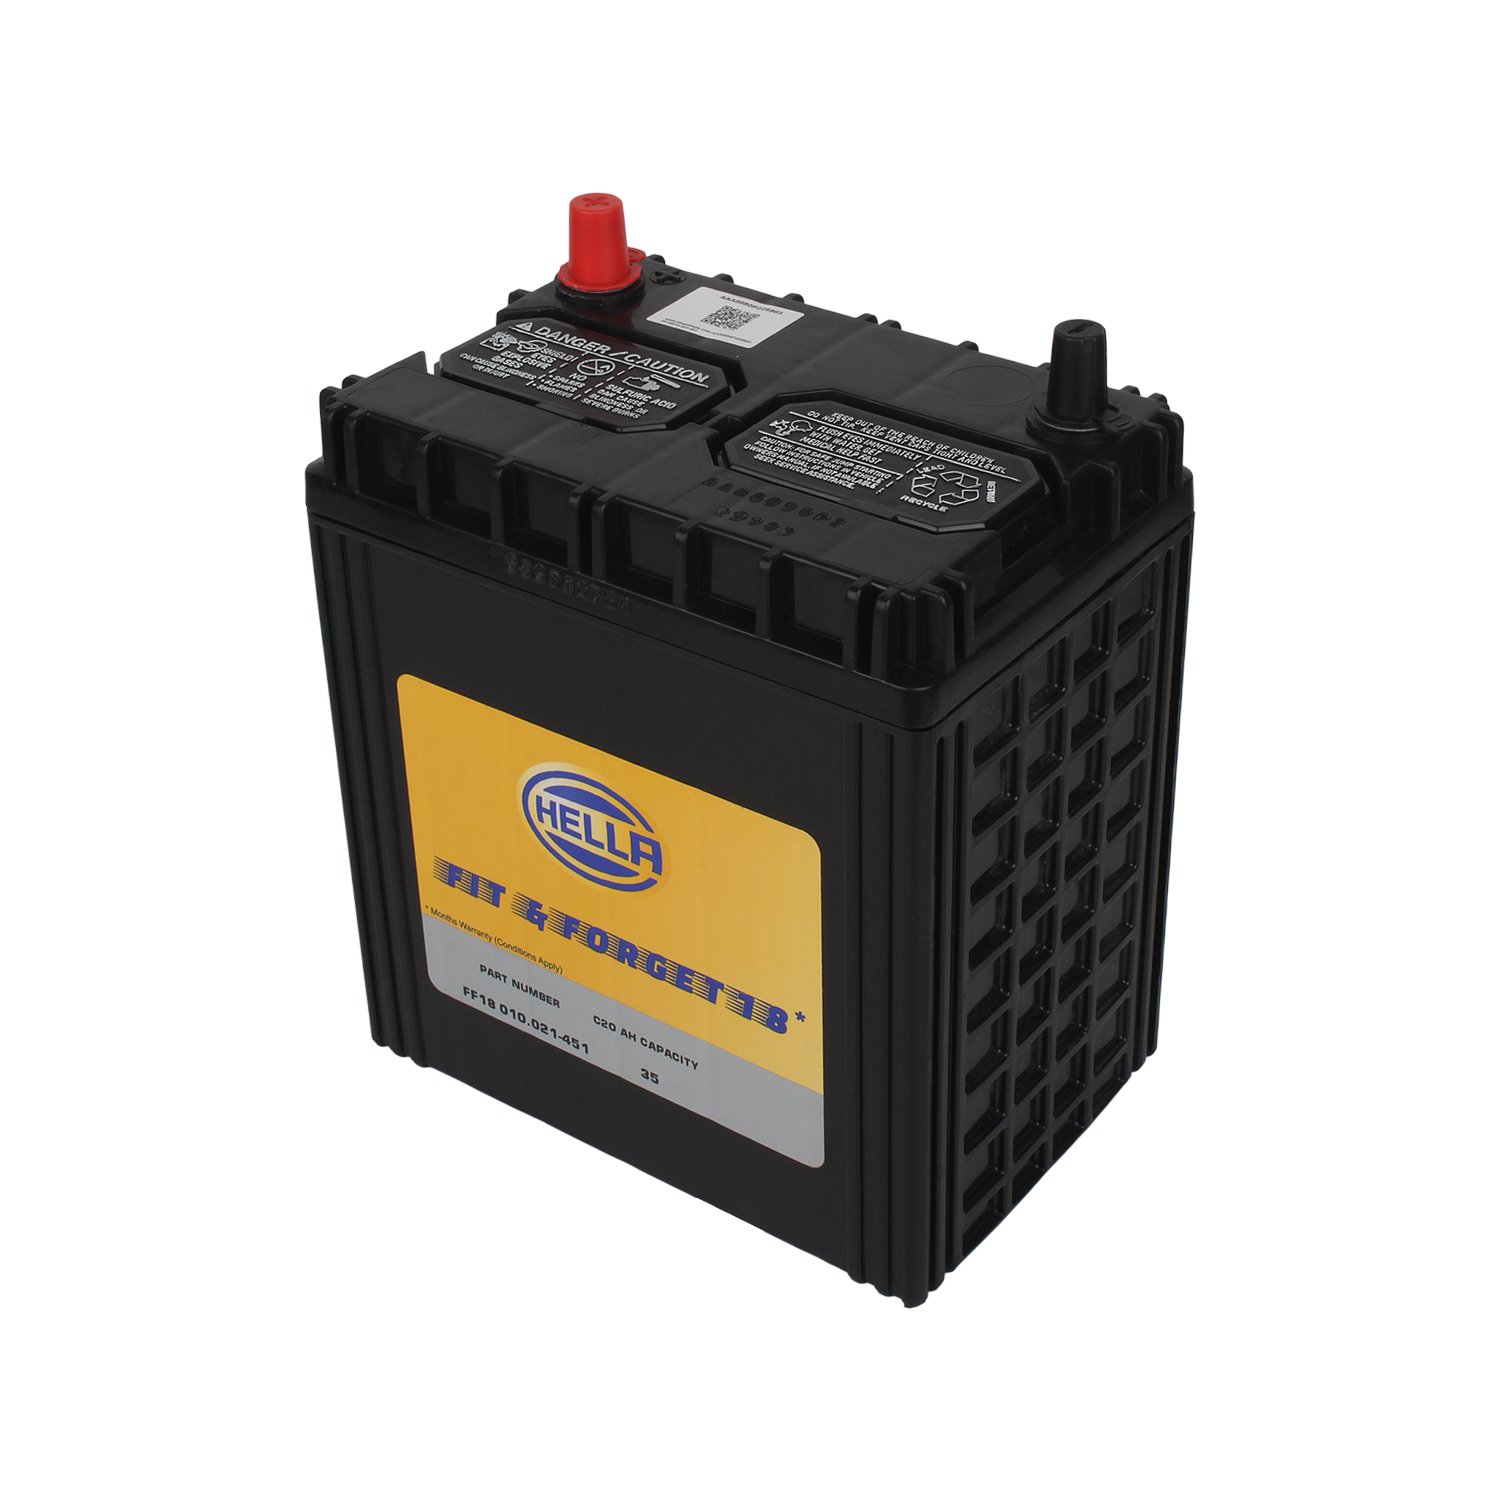 HELLA 010021451 Battery FF18 12V 35AH HE400L